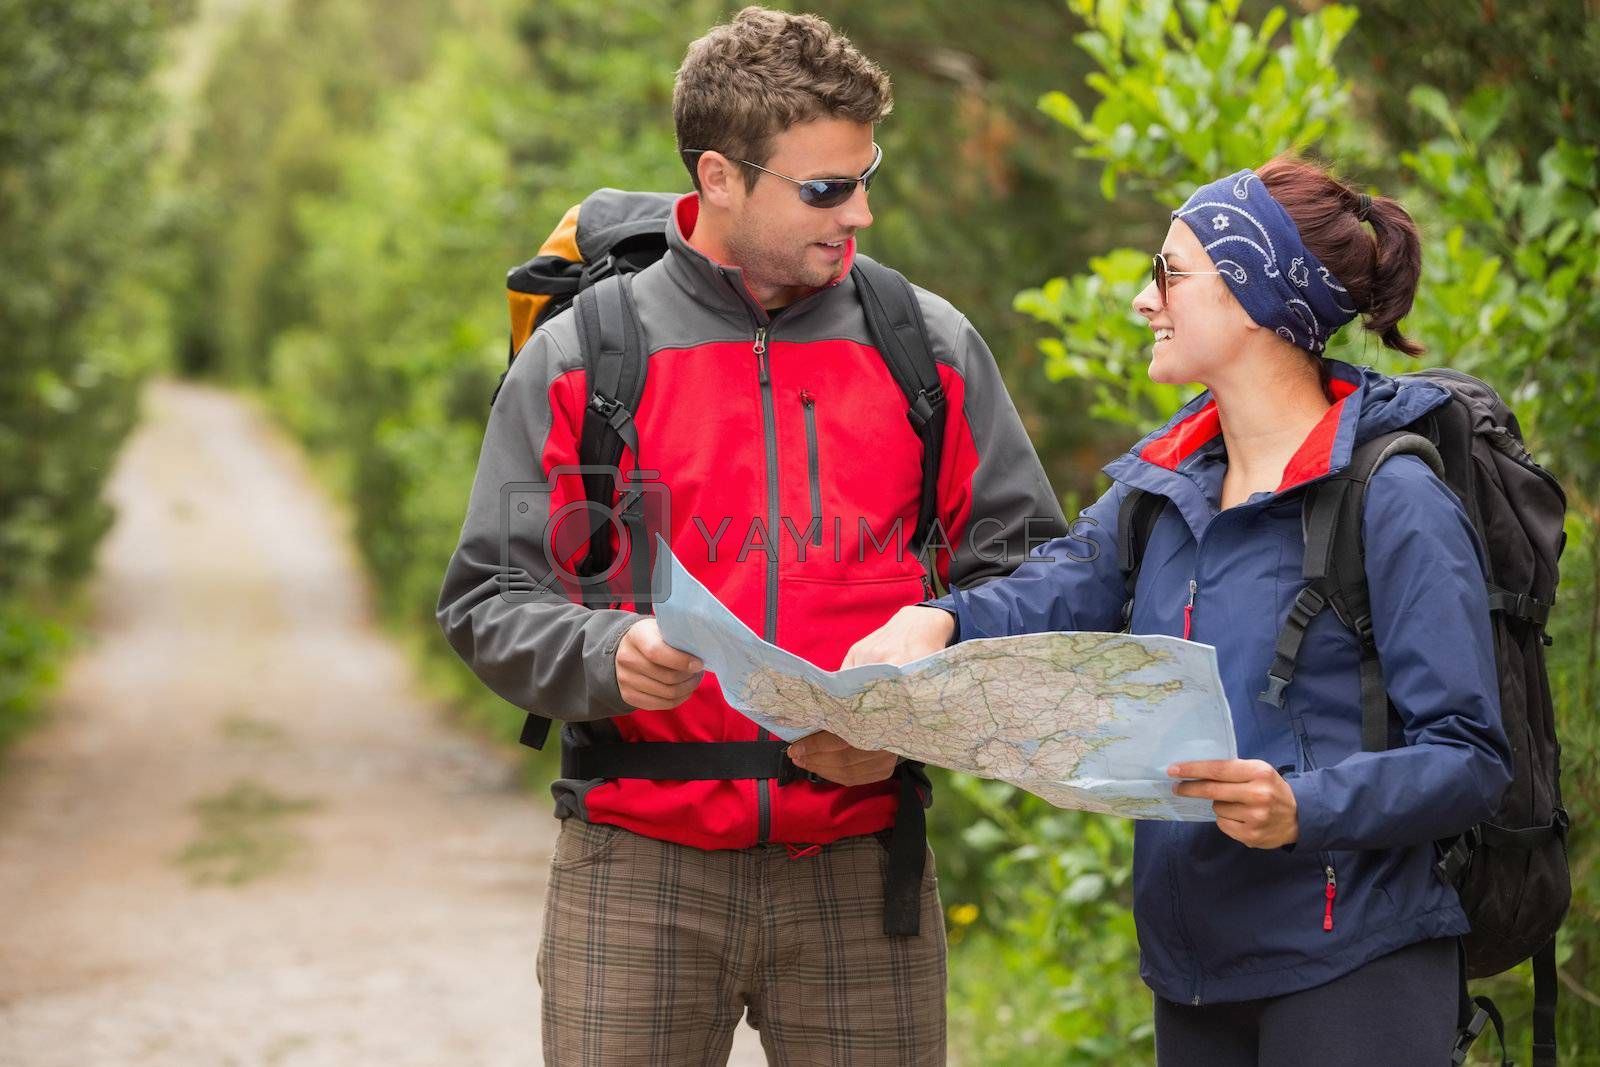 Fit couple going on a hike together looking at map by Wavebreakmedia